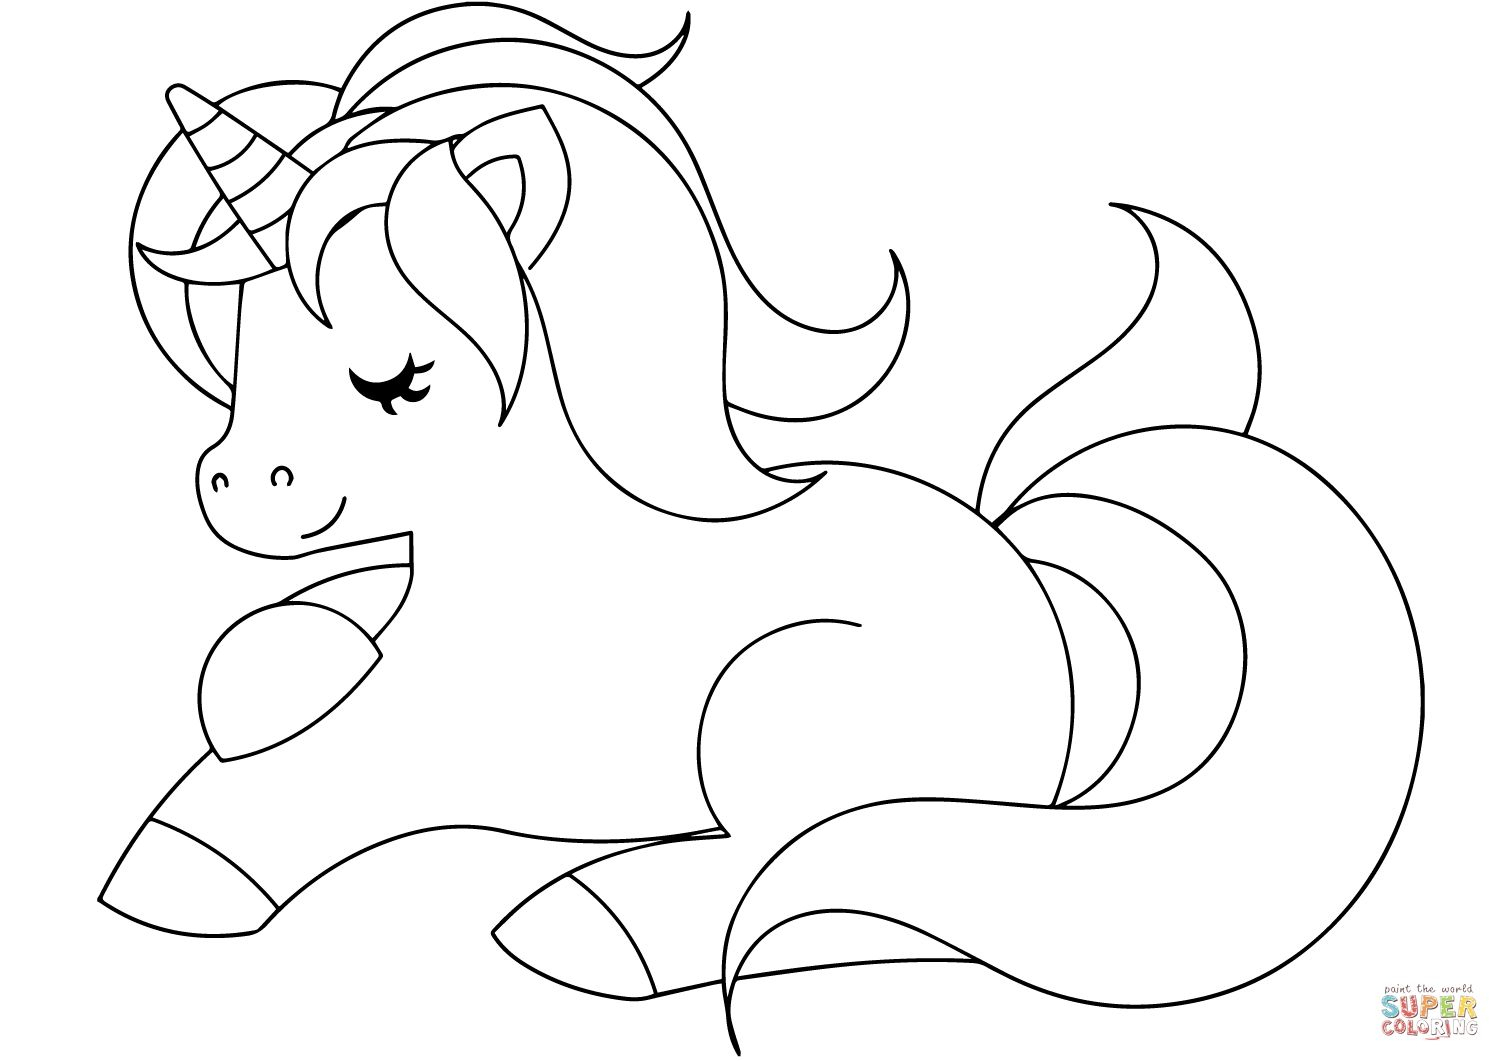 Cute Unicorn Coloring Page | Free Printable Coloring Pages With - Free Coloring Pages Com Printable